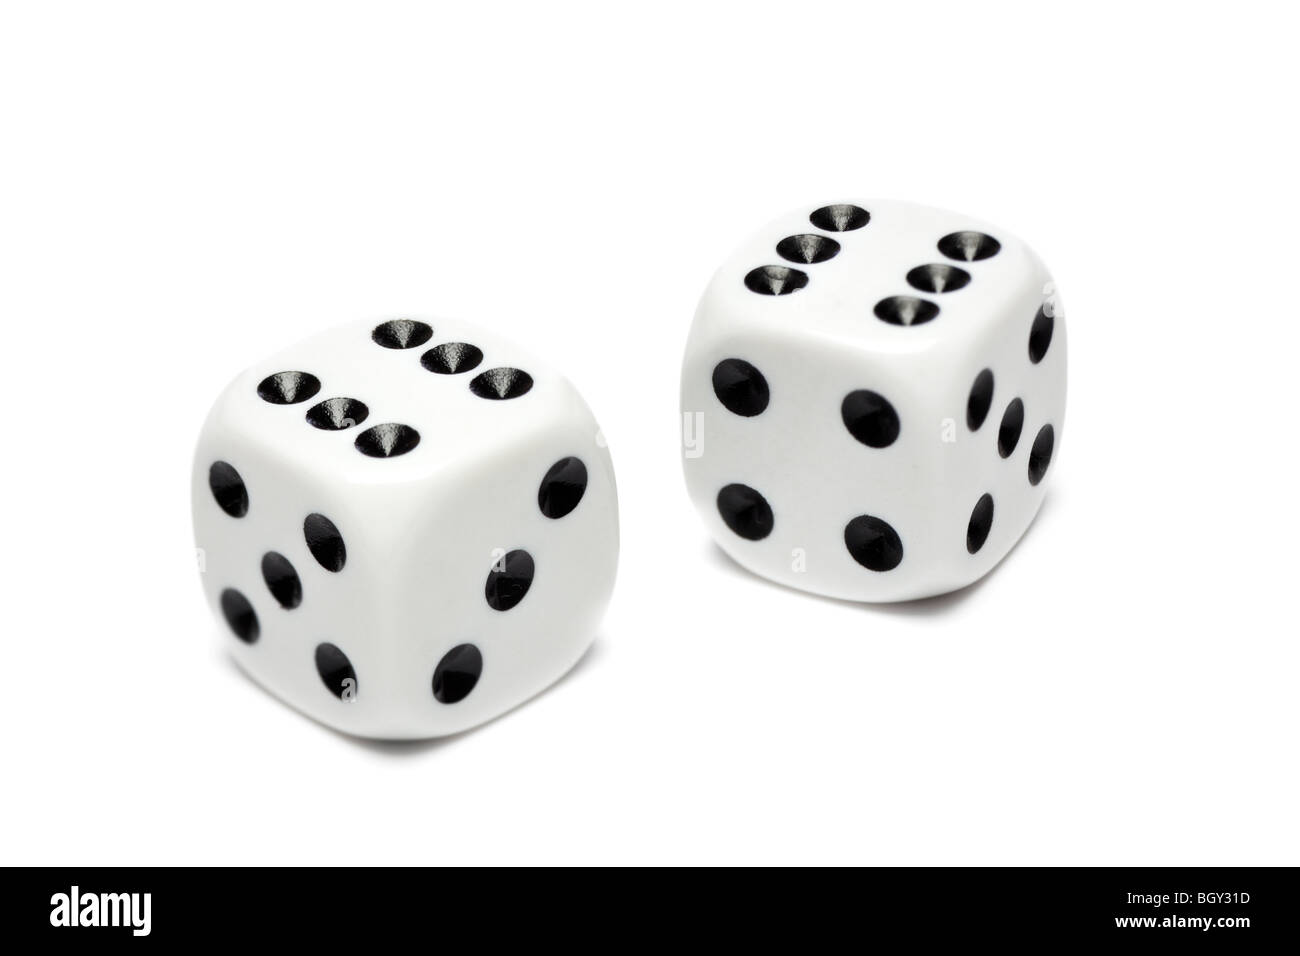 Pair of white dice - Stock Image